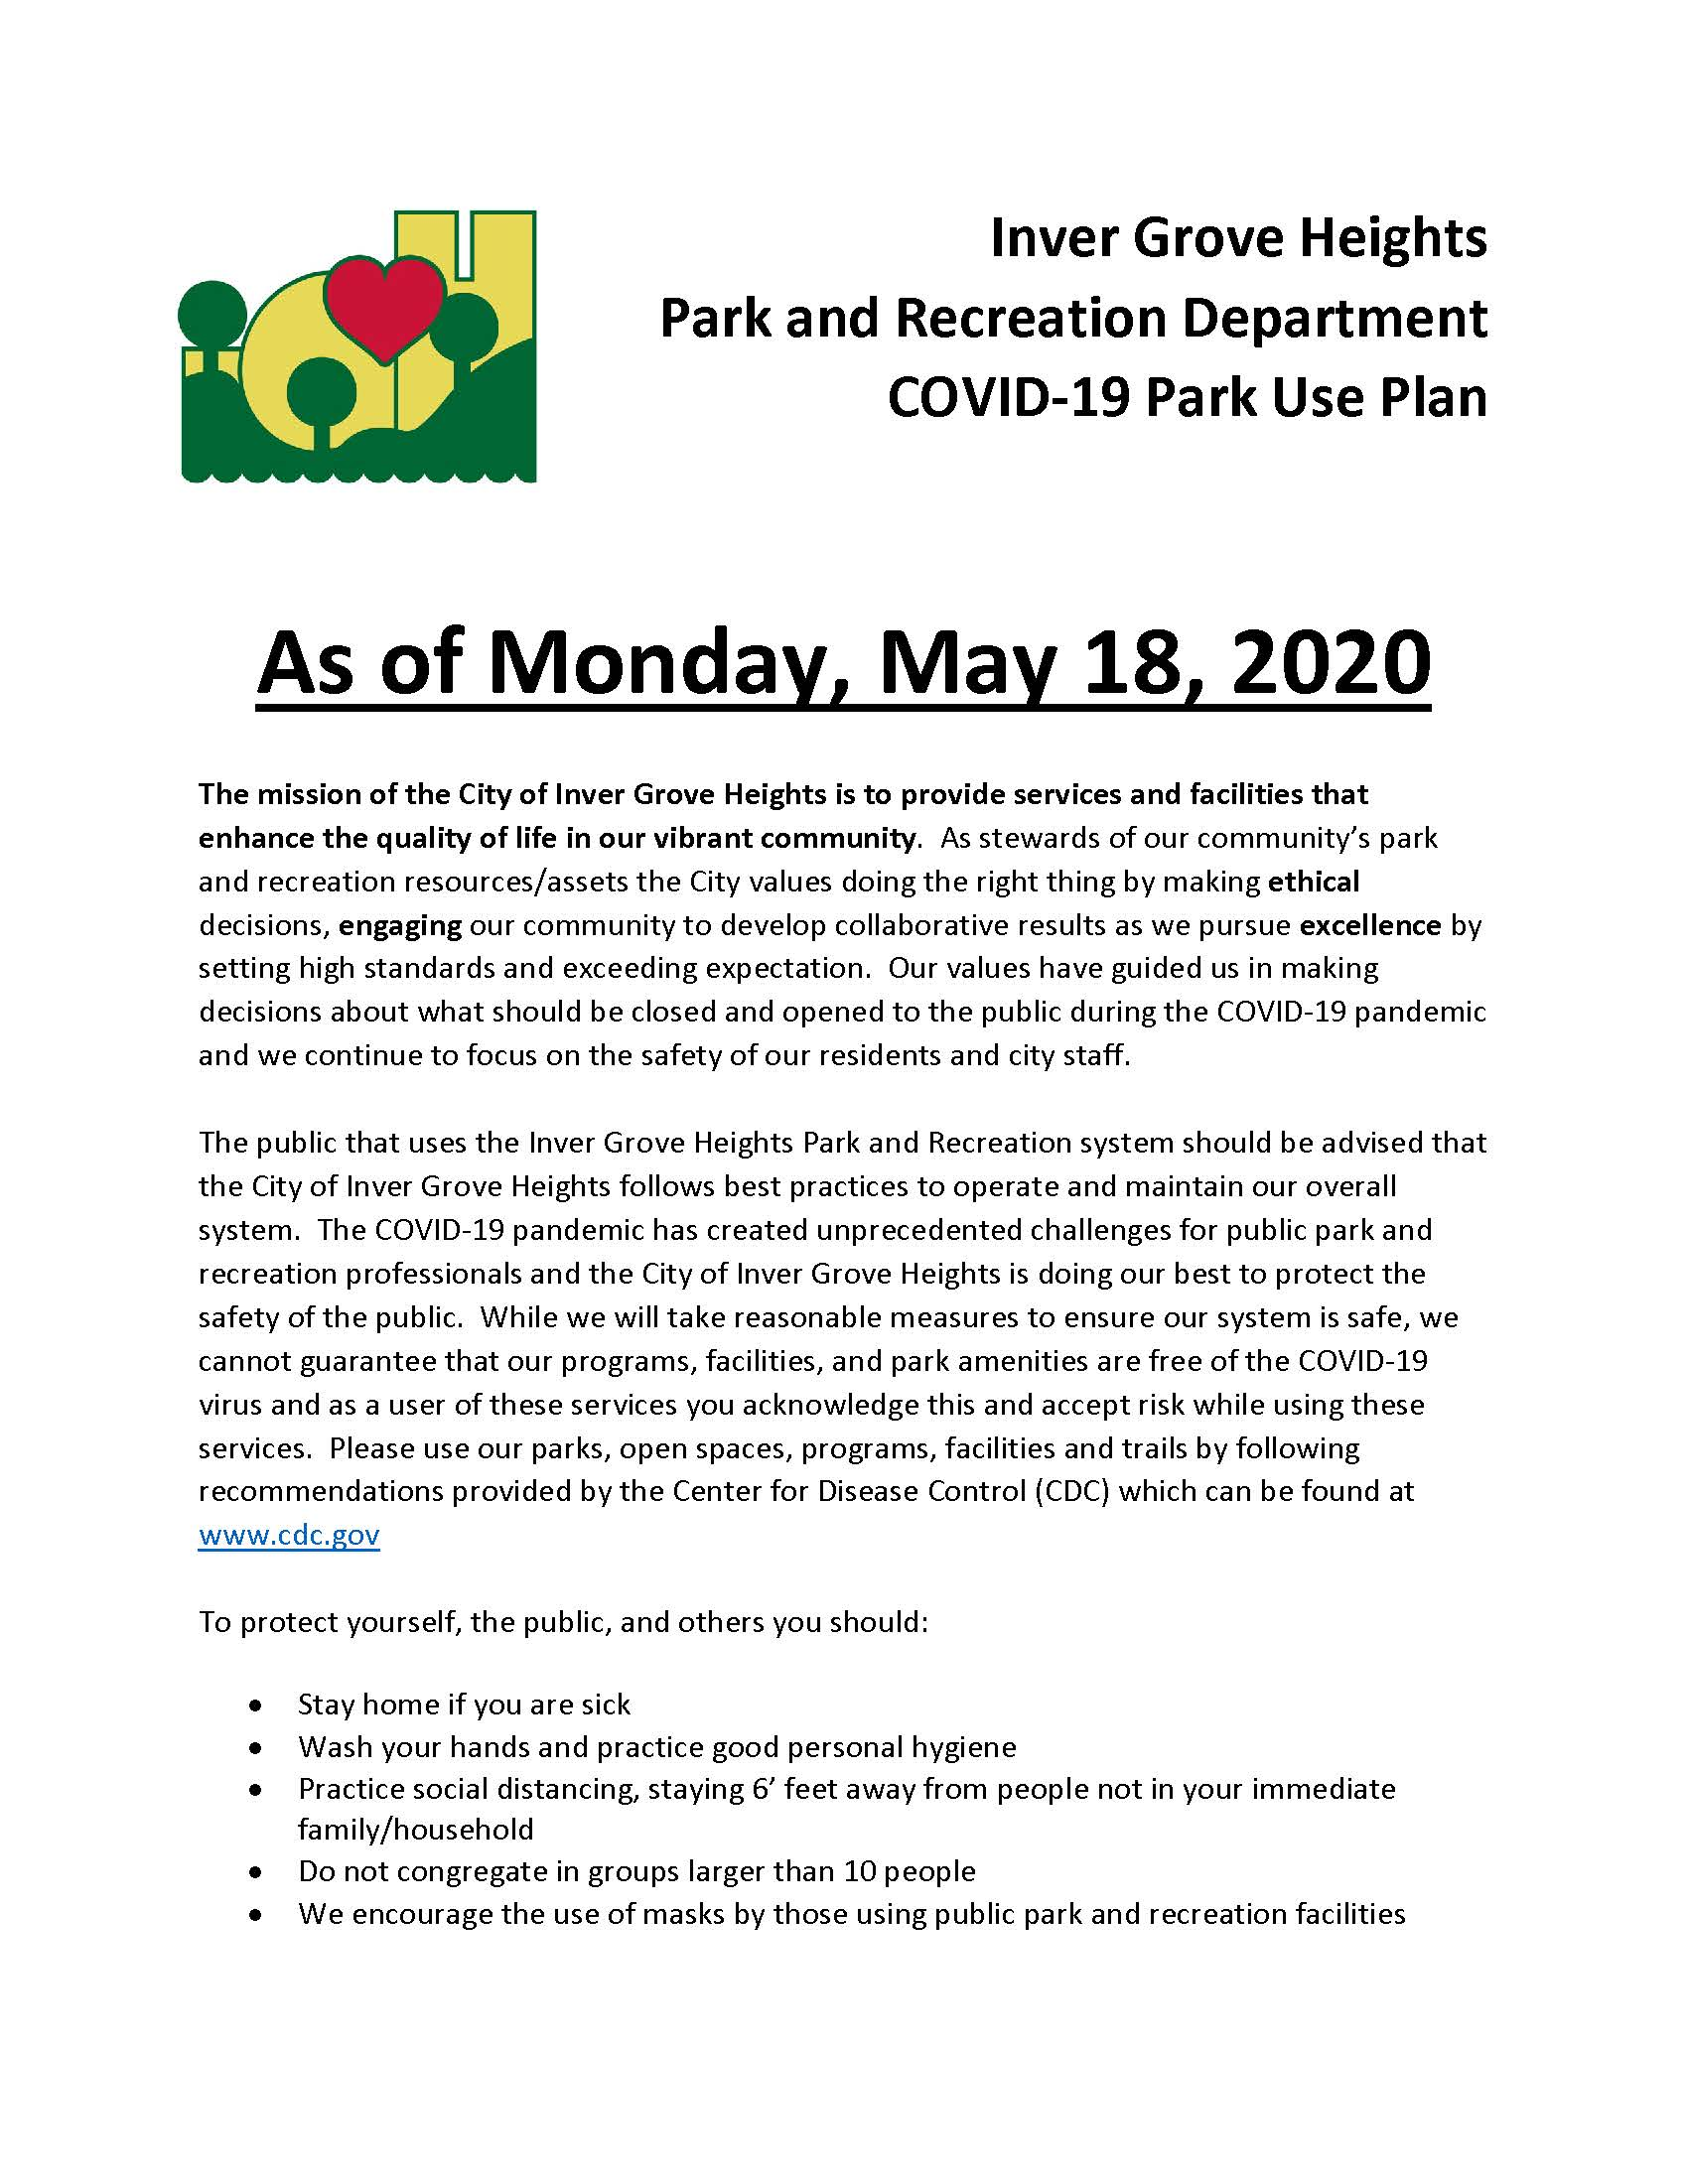 Parks Reopening Final Letter